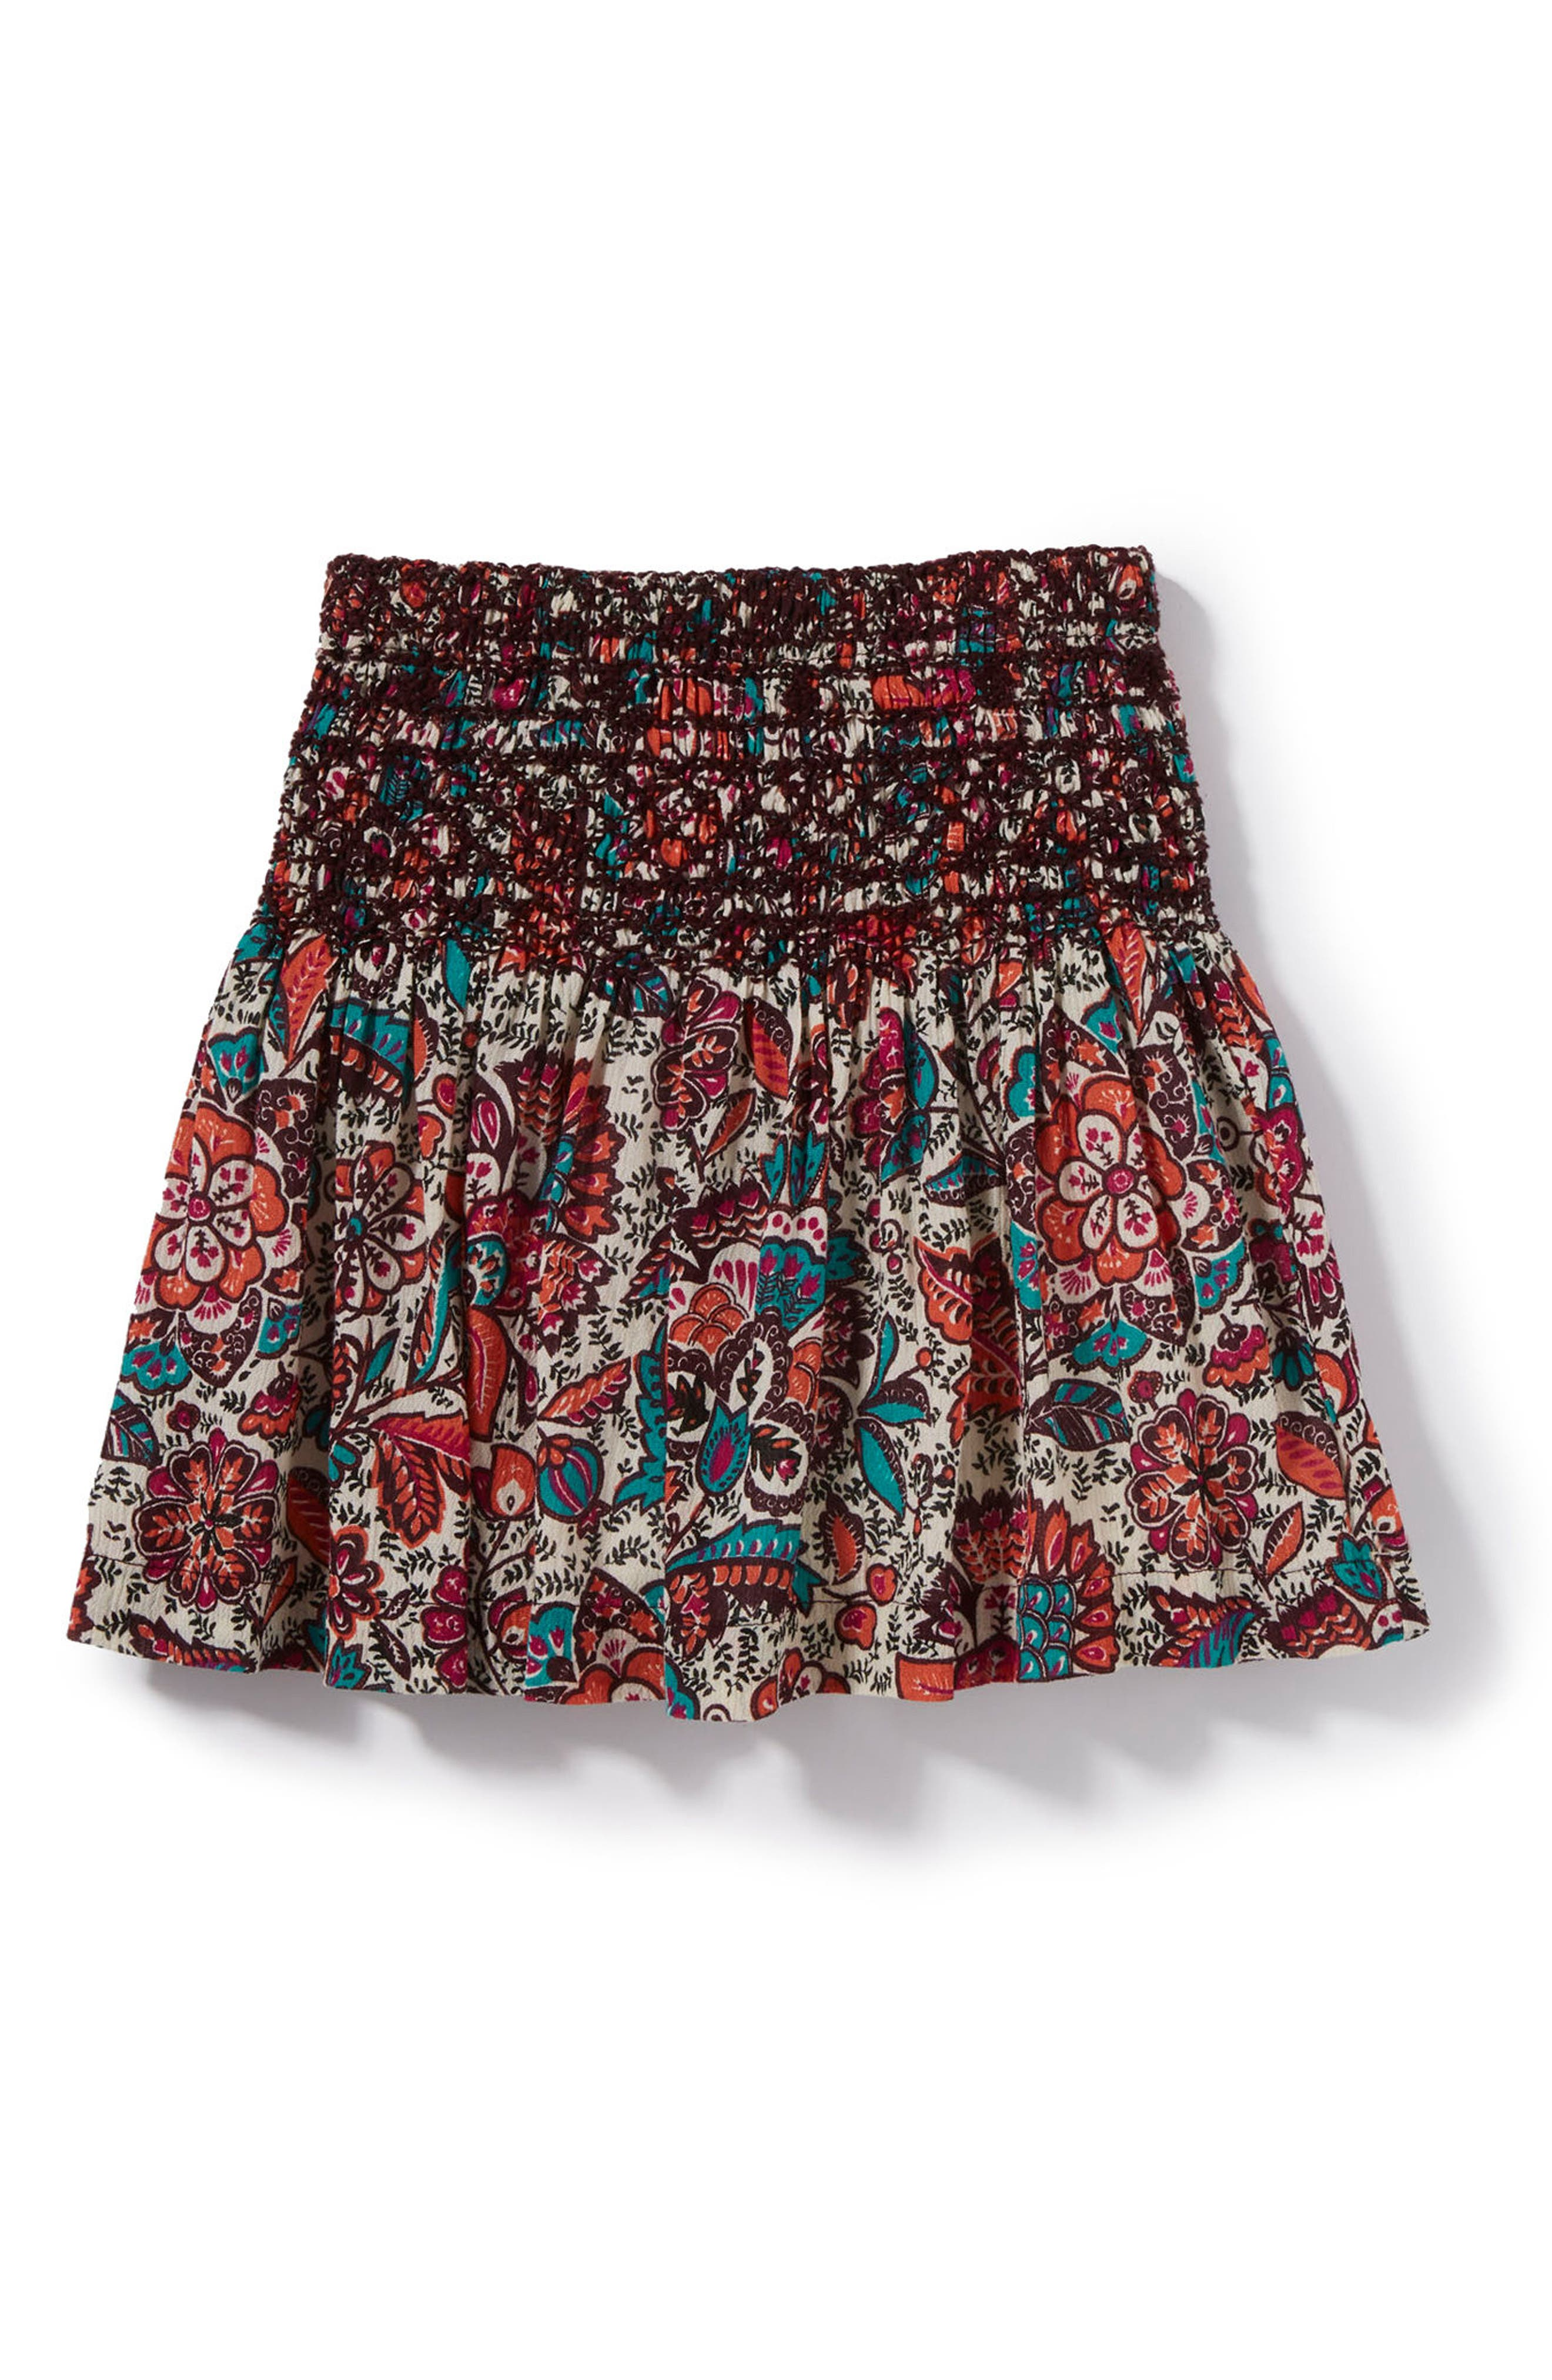 Pixie Print Skirt,                             Main thumbnail 1, color,                             500